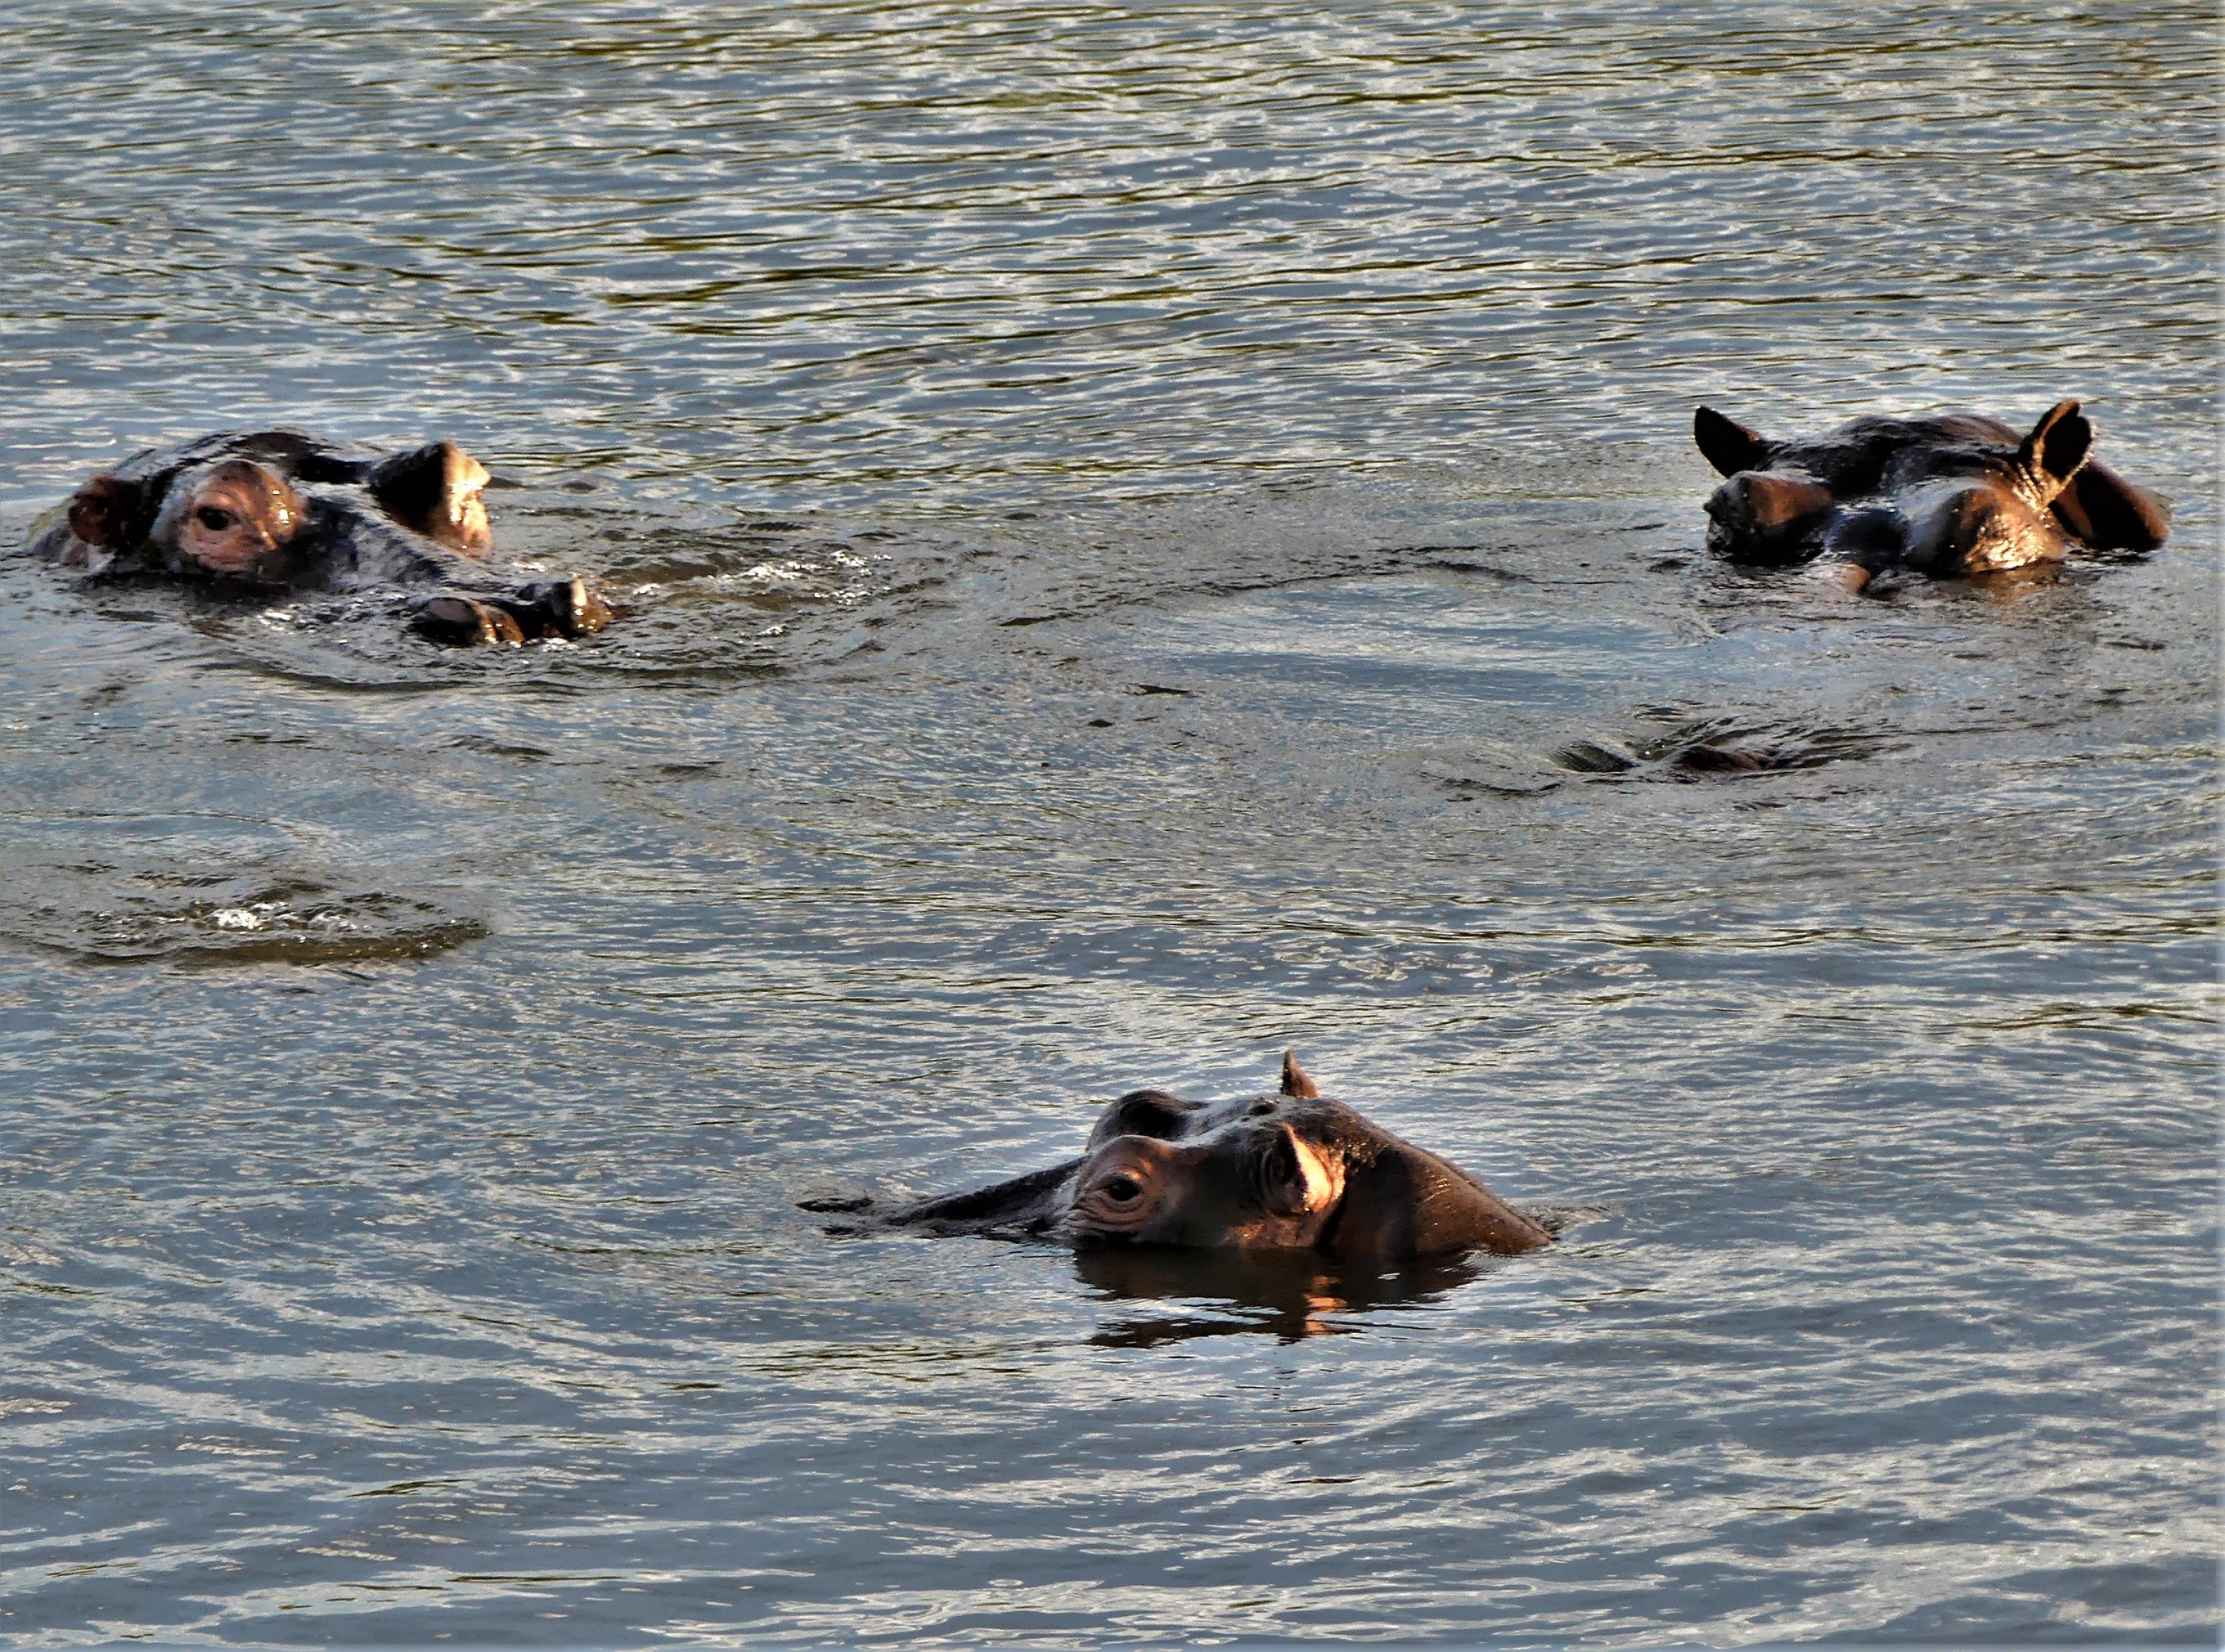 3 hippos skimming the surface